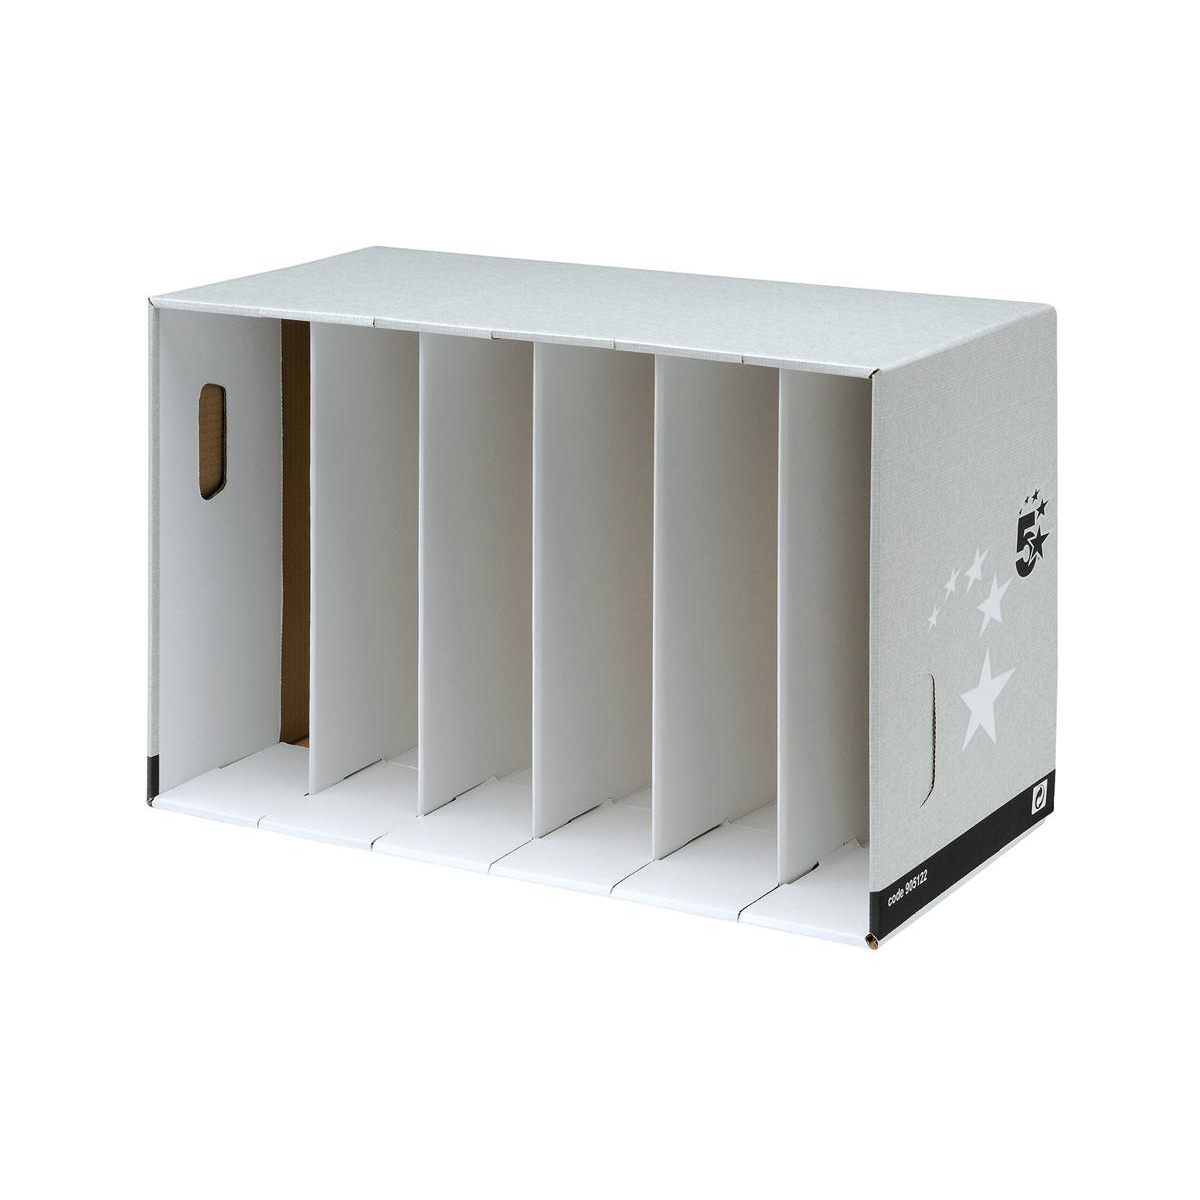 5 Star Facilities Lever Arch Module for 6 Files Grey [Pack 5]